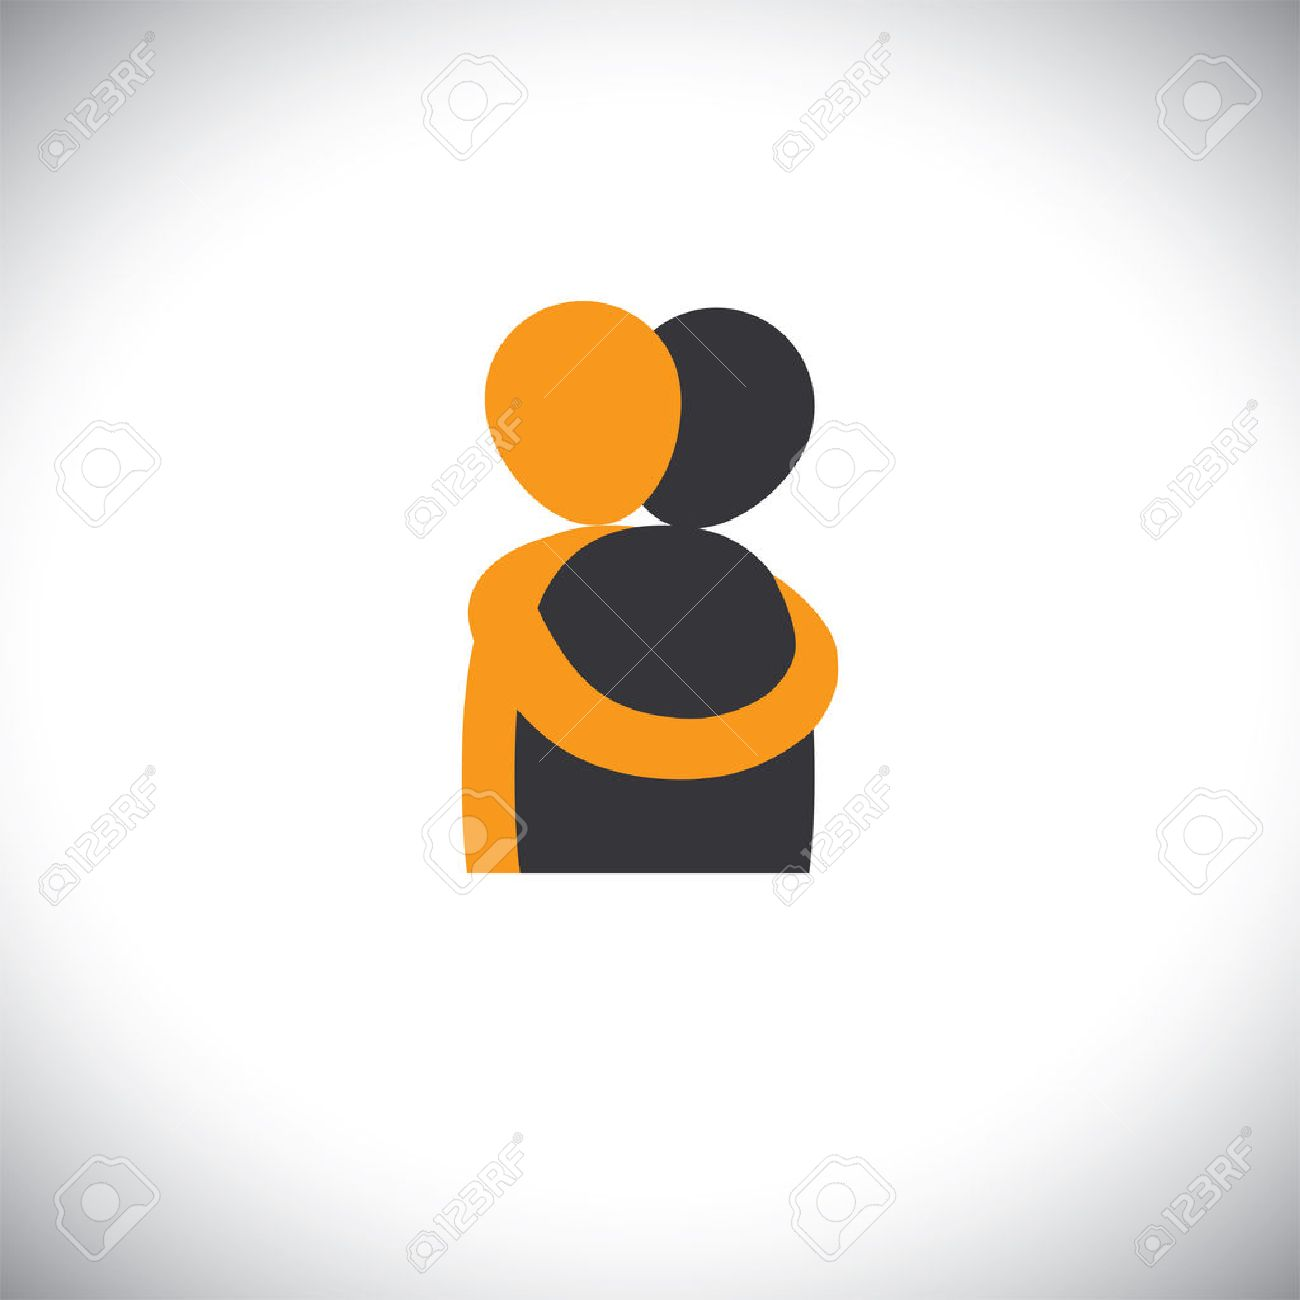 People Hug Each Other Friends Embrace Vector Graphic This